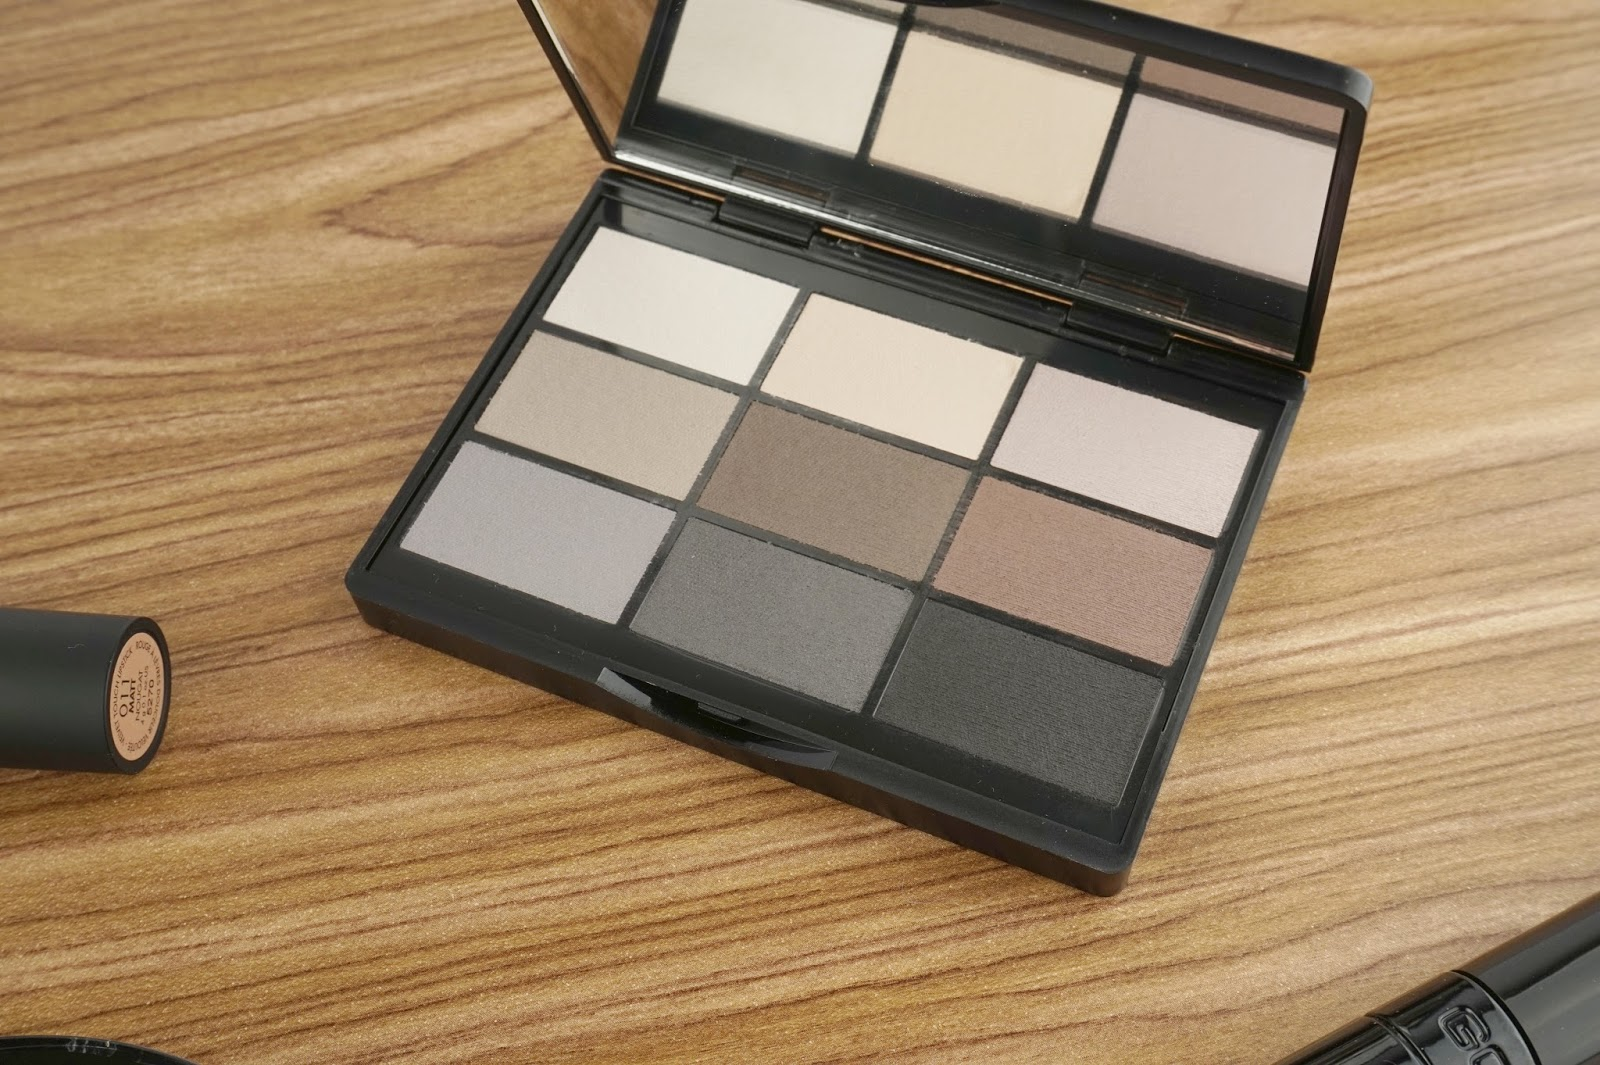 GOSH Cosmetics core products review 9 shades to be cool in copenhagen